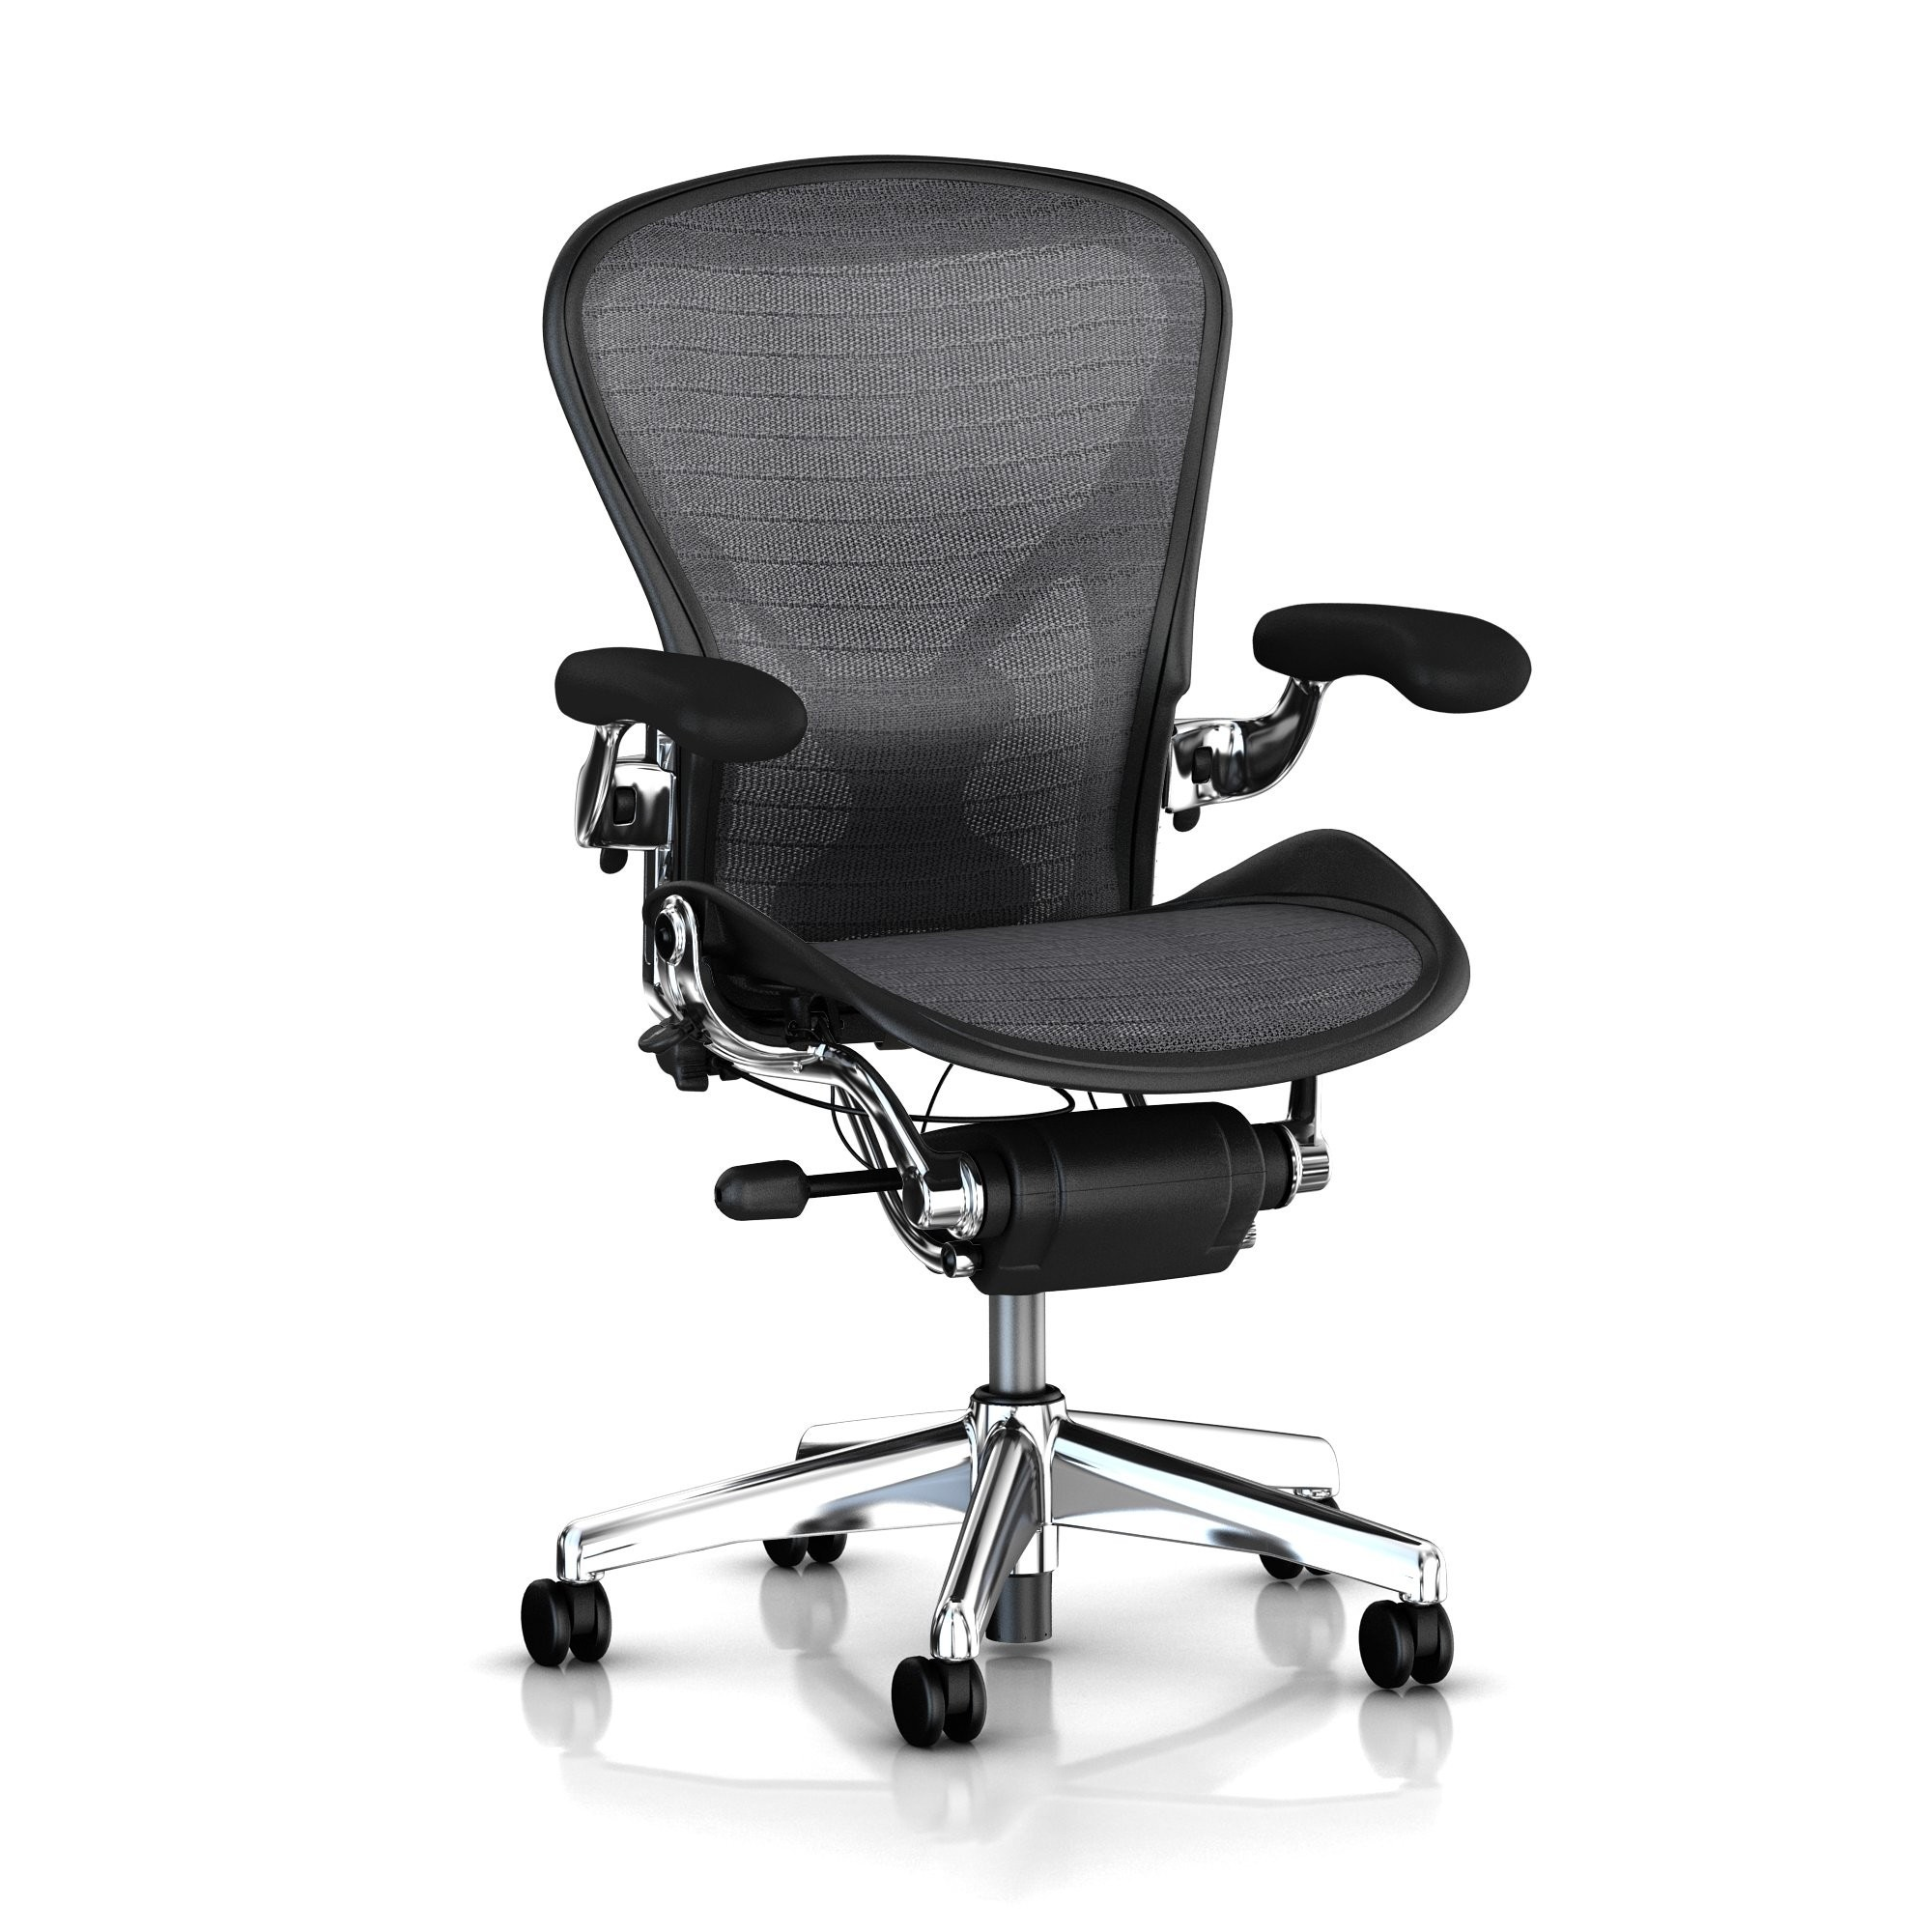 aeron tuxedo black grey miller image precision in stock chair classic herman